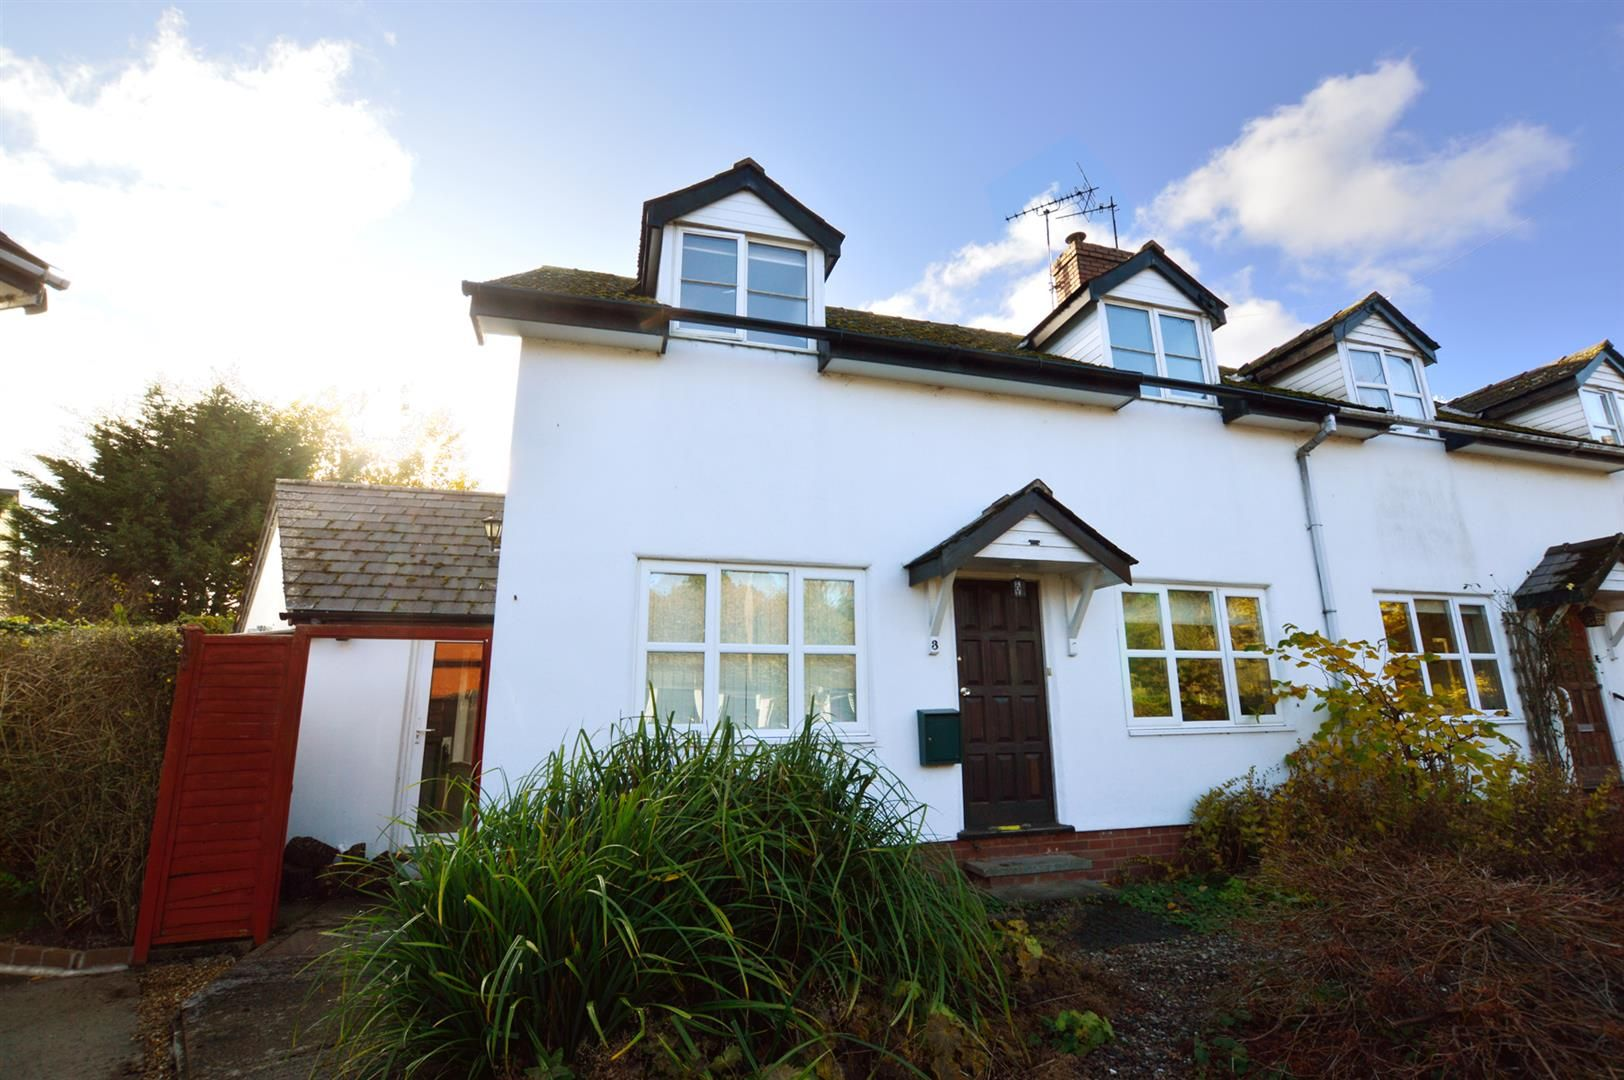 3 bed semi-detached for sale in Dilwyn  - Property Image 1